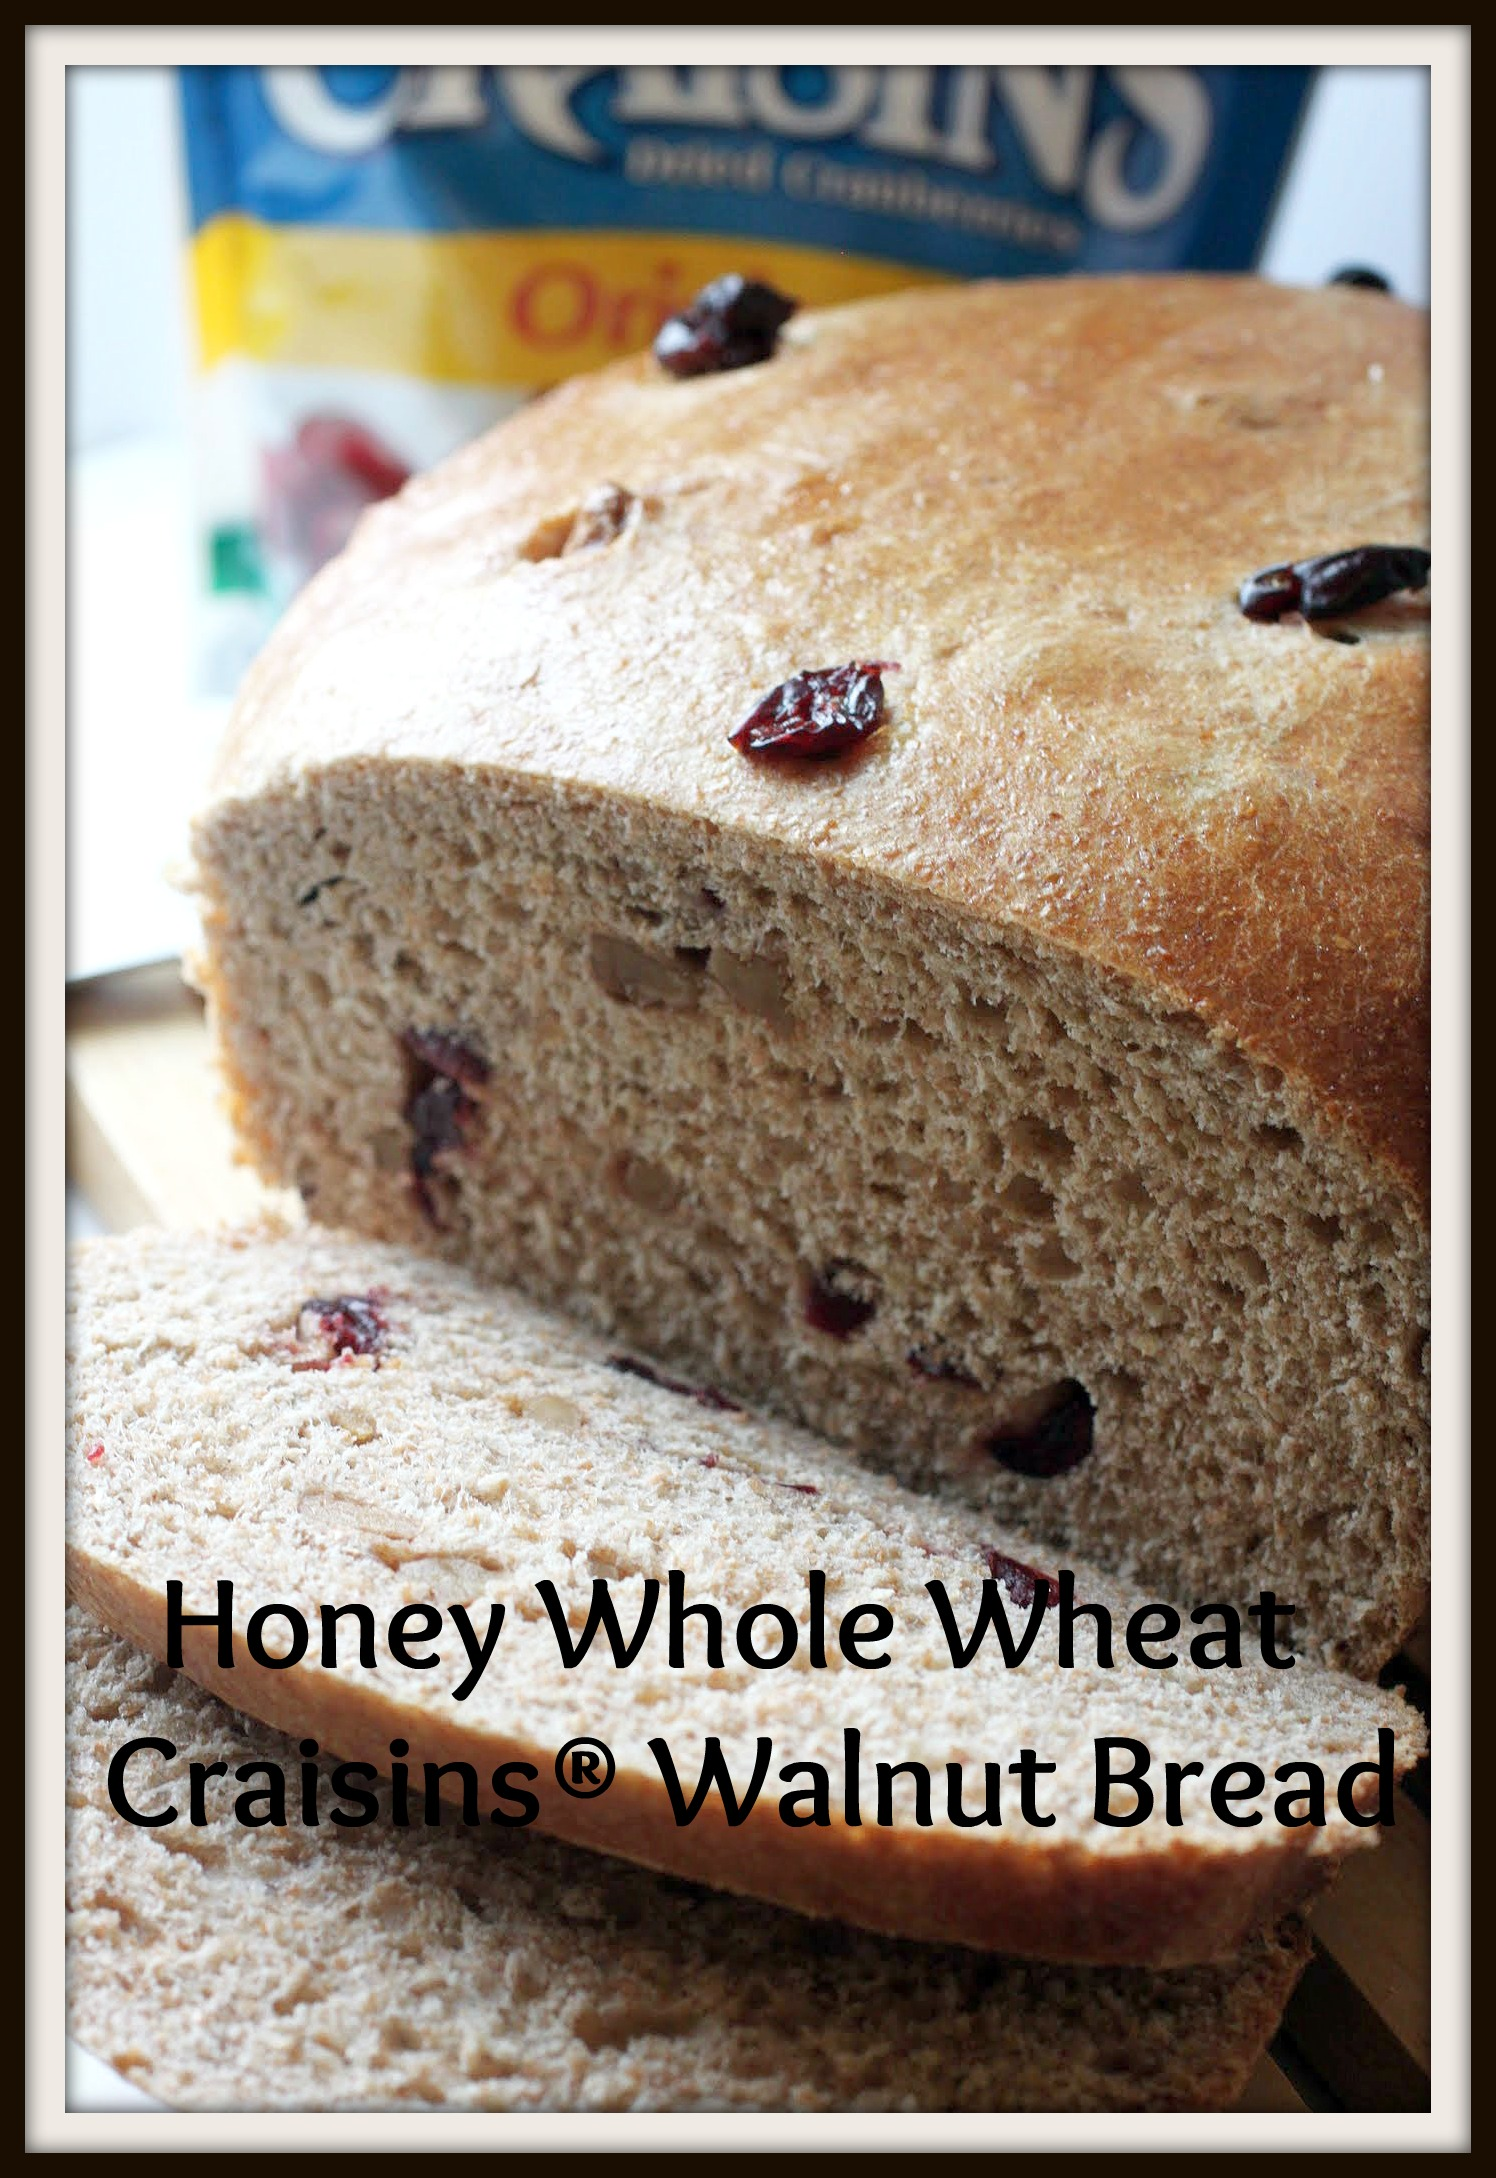 Honey Whole Wheat Craisins® Walnut Bread